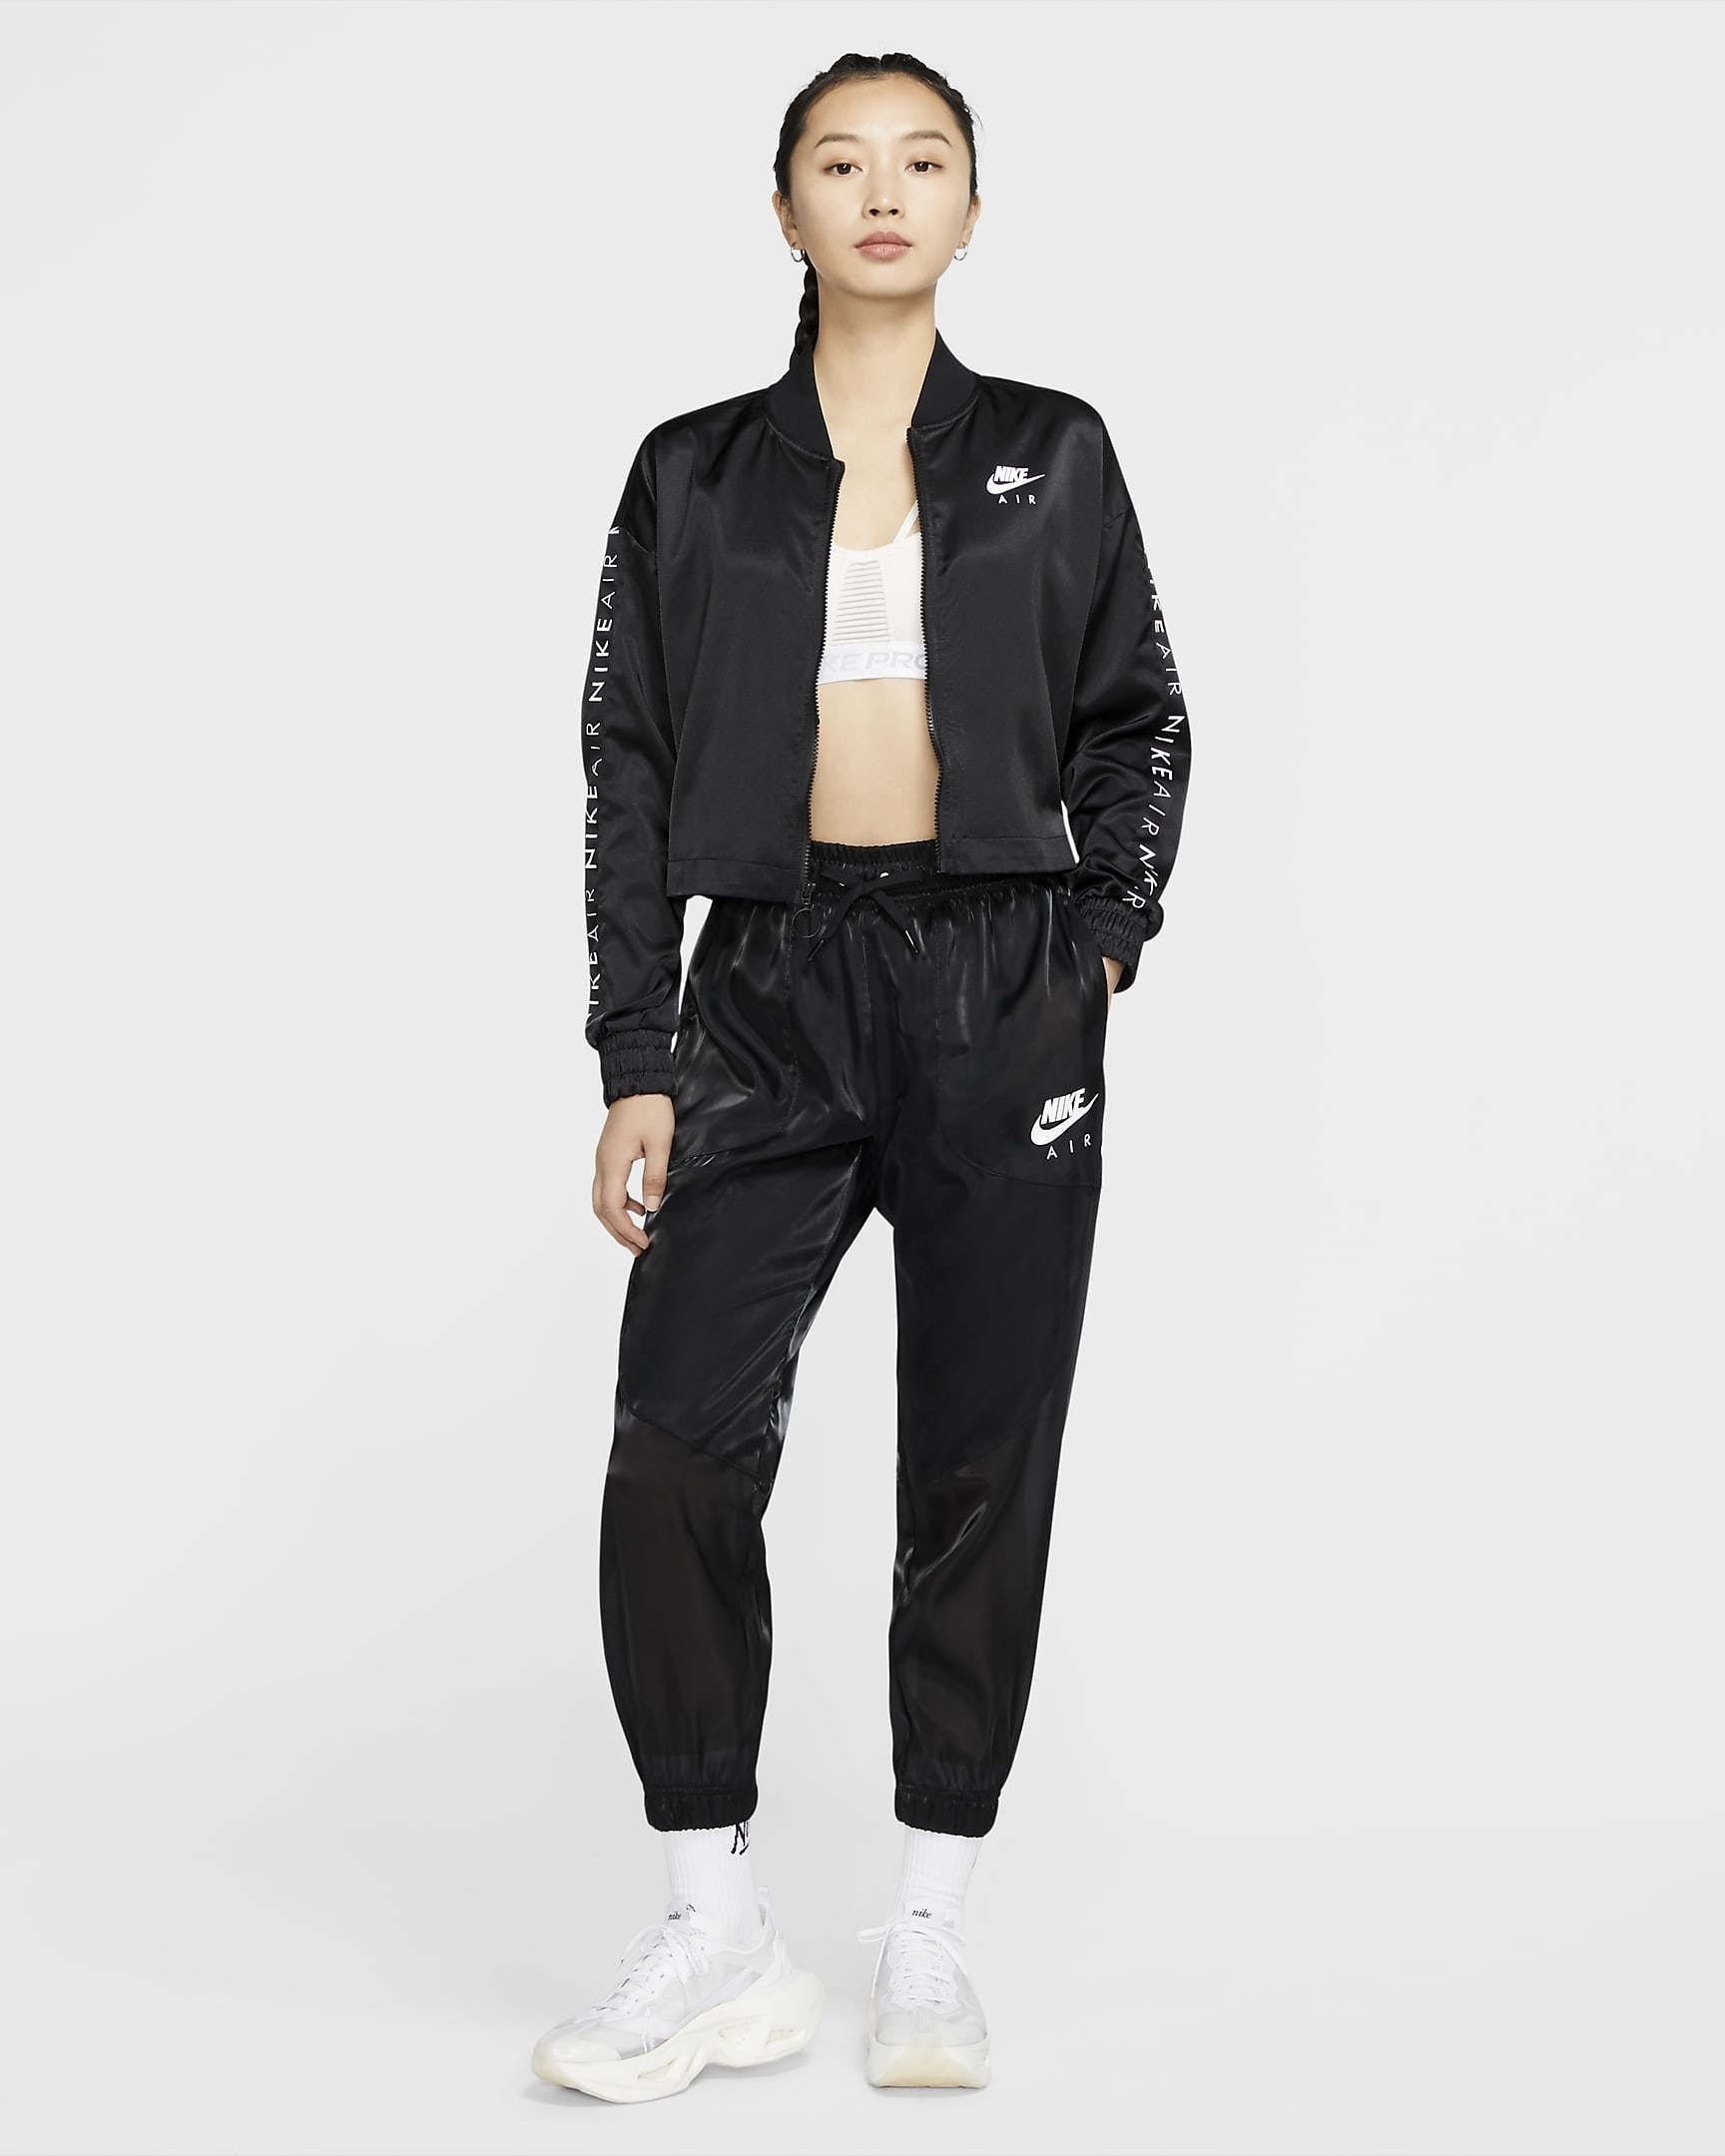 A model wears the nike air pants